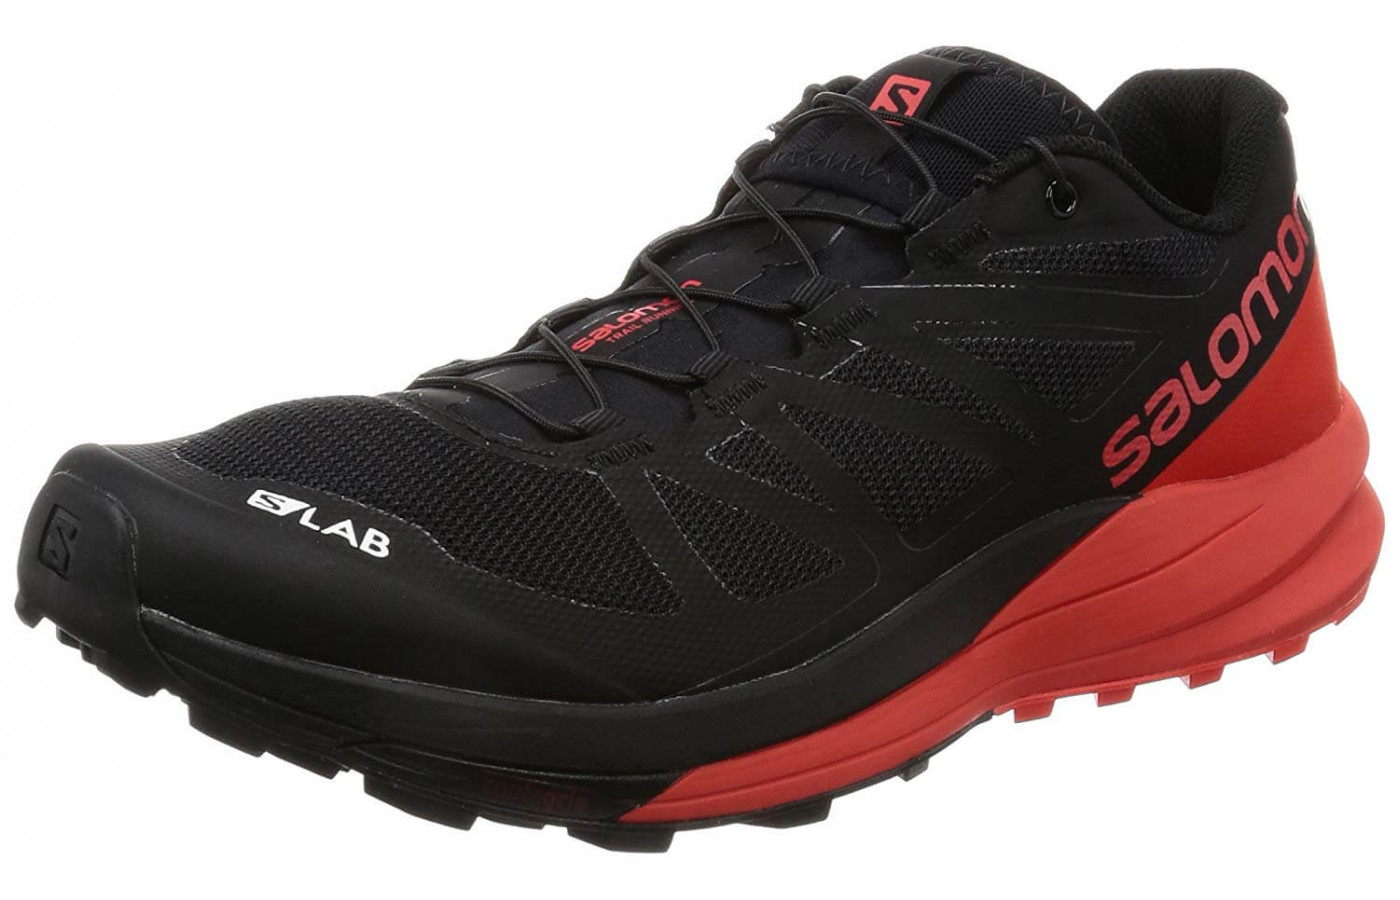 Salomon S-Lab Ultra front angle